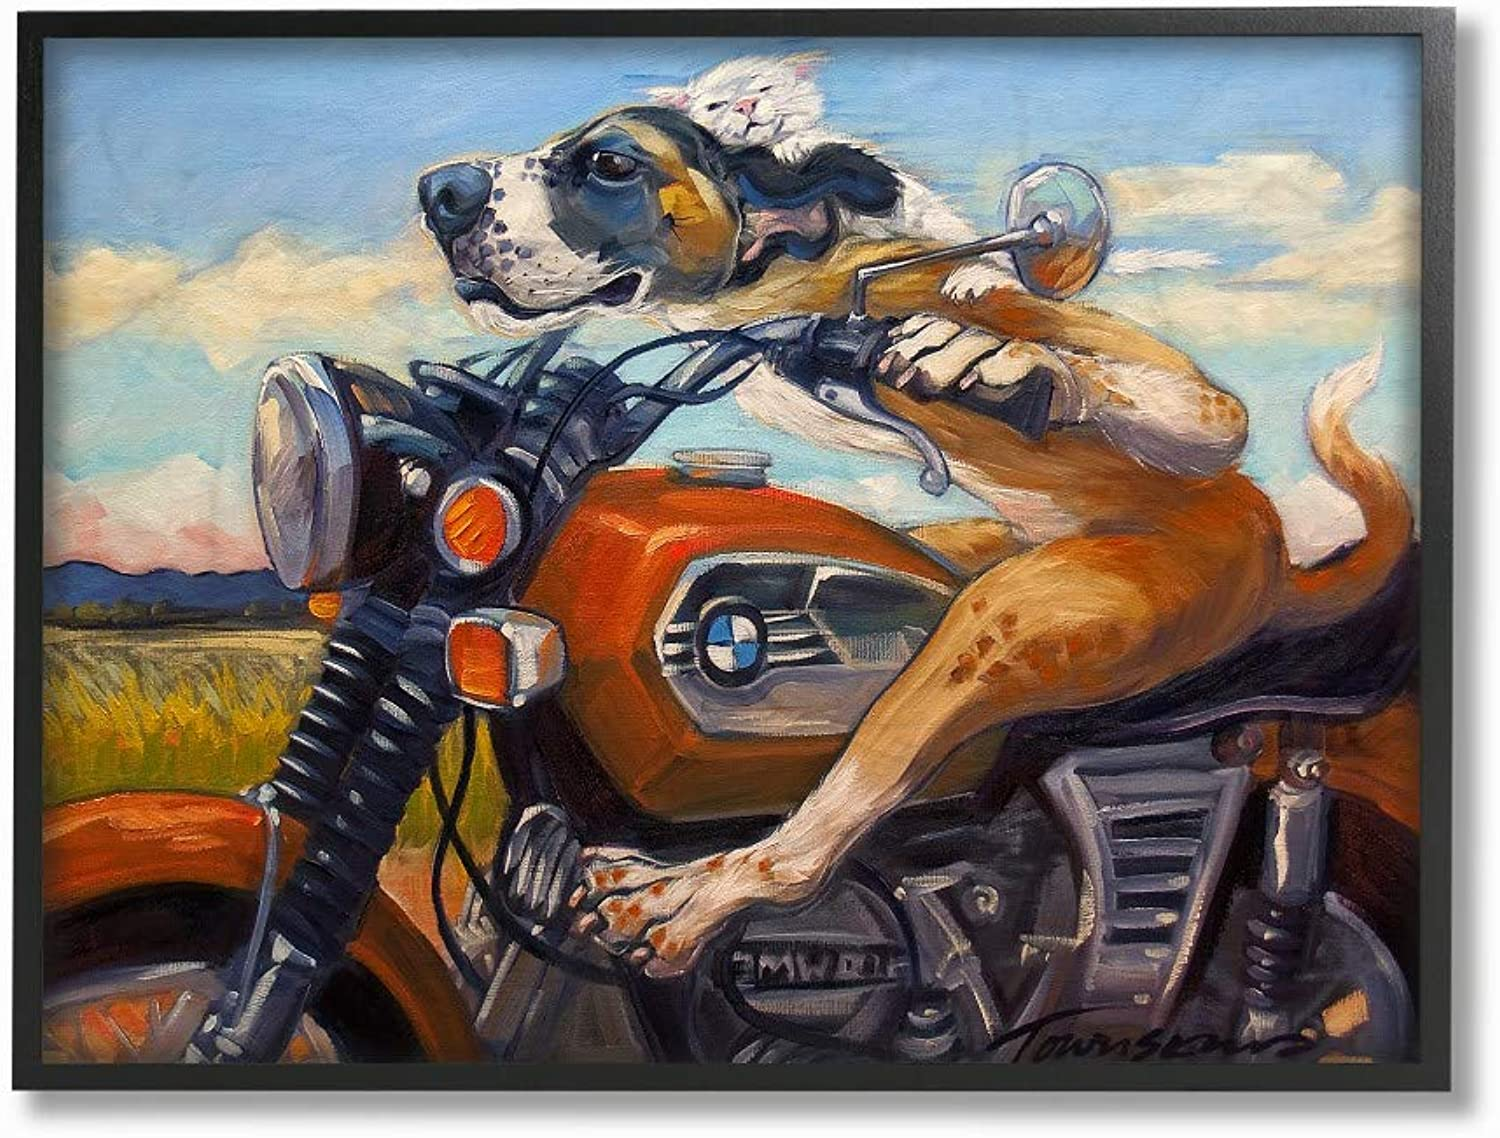 The Stupell Home Decor Collection Dog & Cat on A Red Motorcycle Framed Giclee Art, 16x20, Multicolor